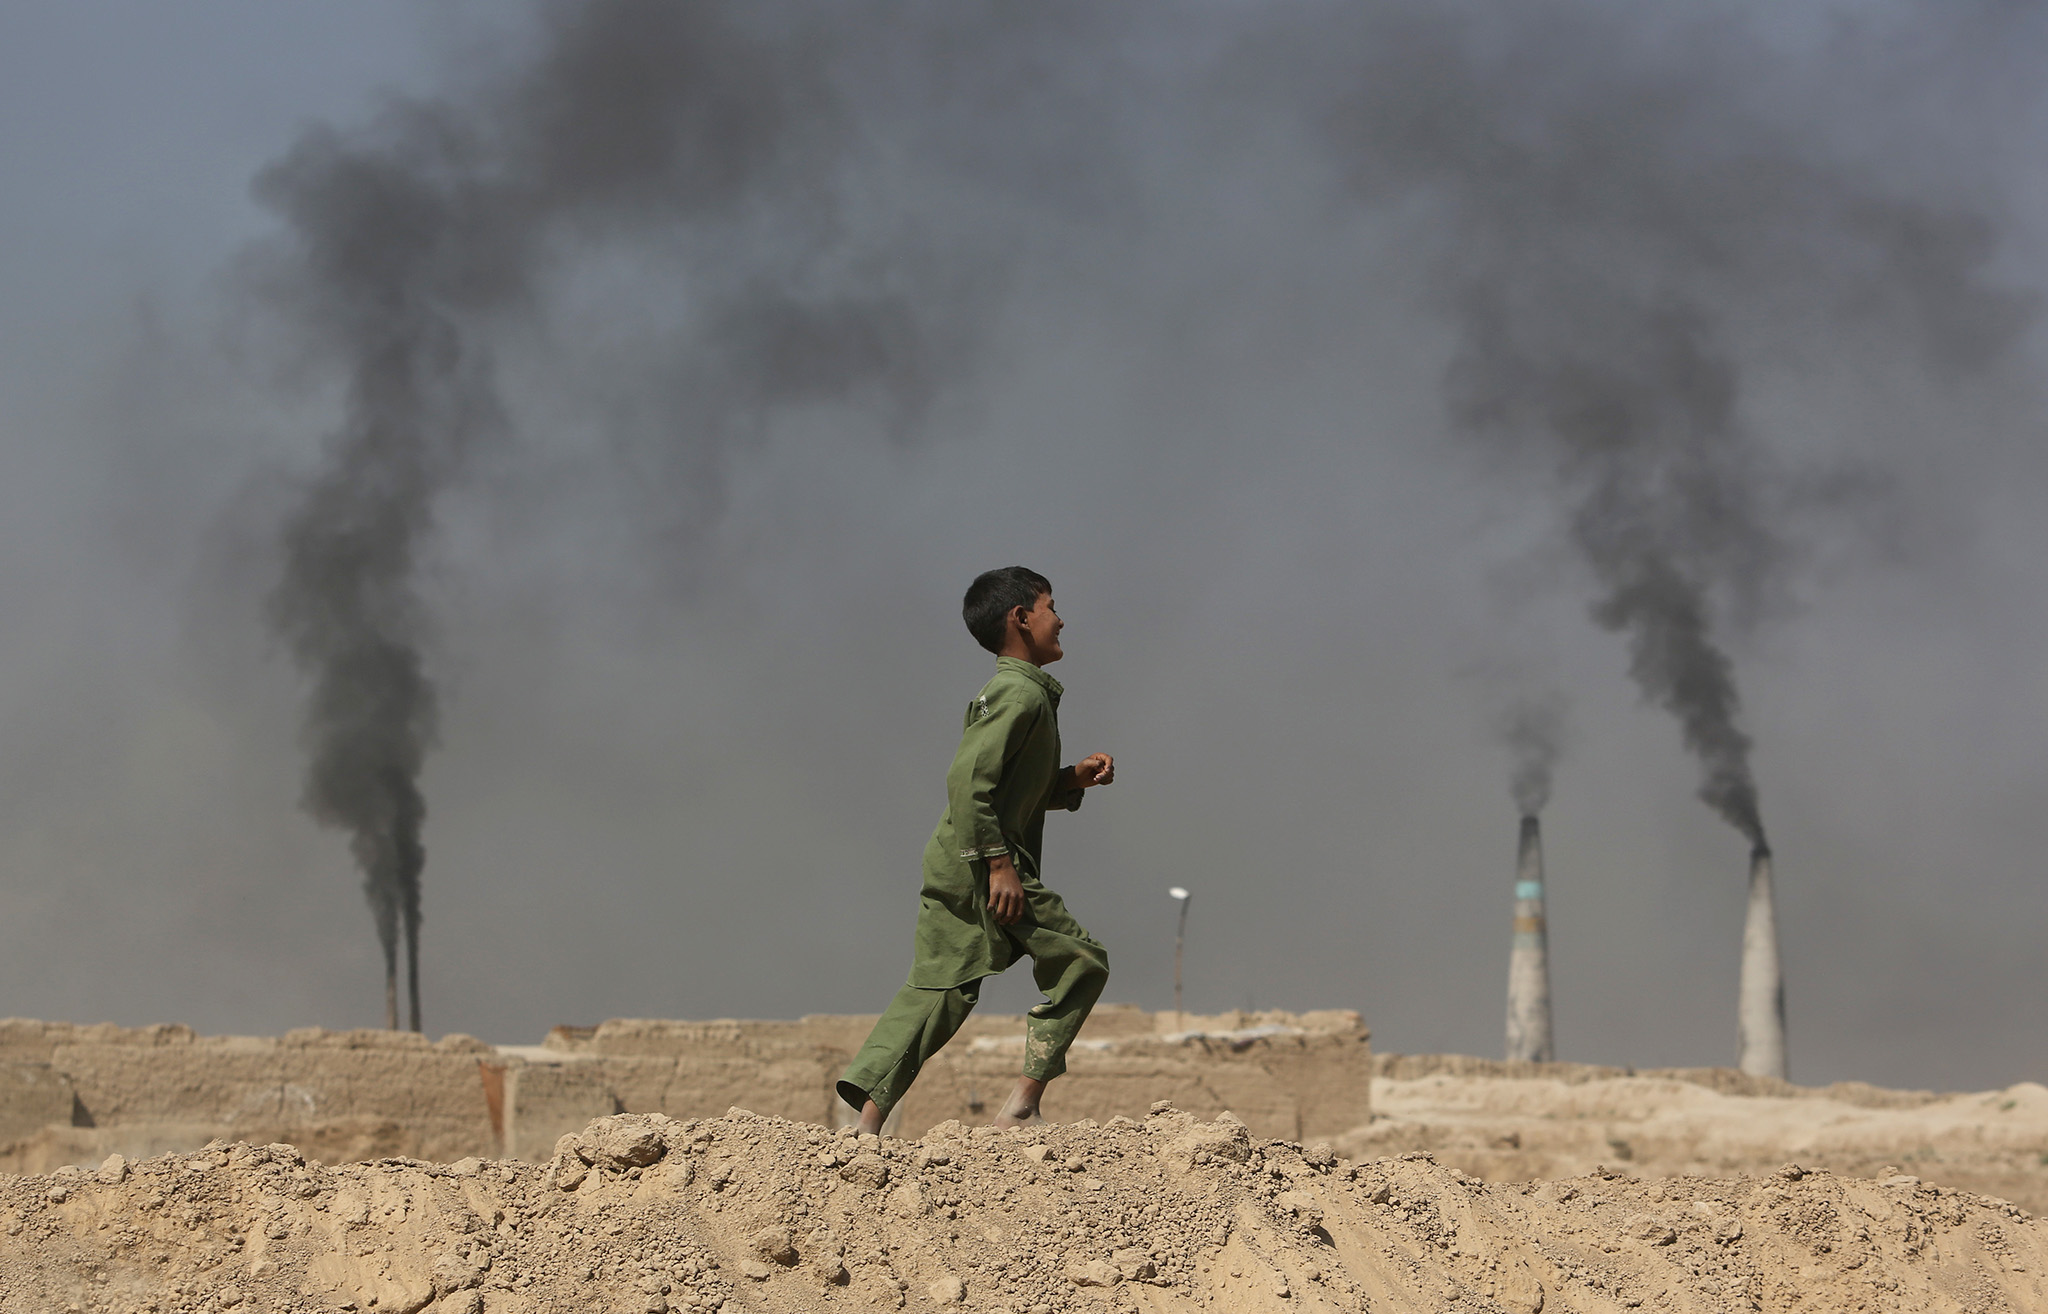 An Afghan boy runs past at a local brick factory on the outskirts of Kabul, Afghanistan, Monday, Sept. 19, 2016. (AP Photo/Rahmat Gul)